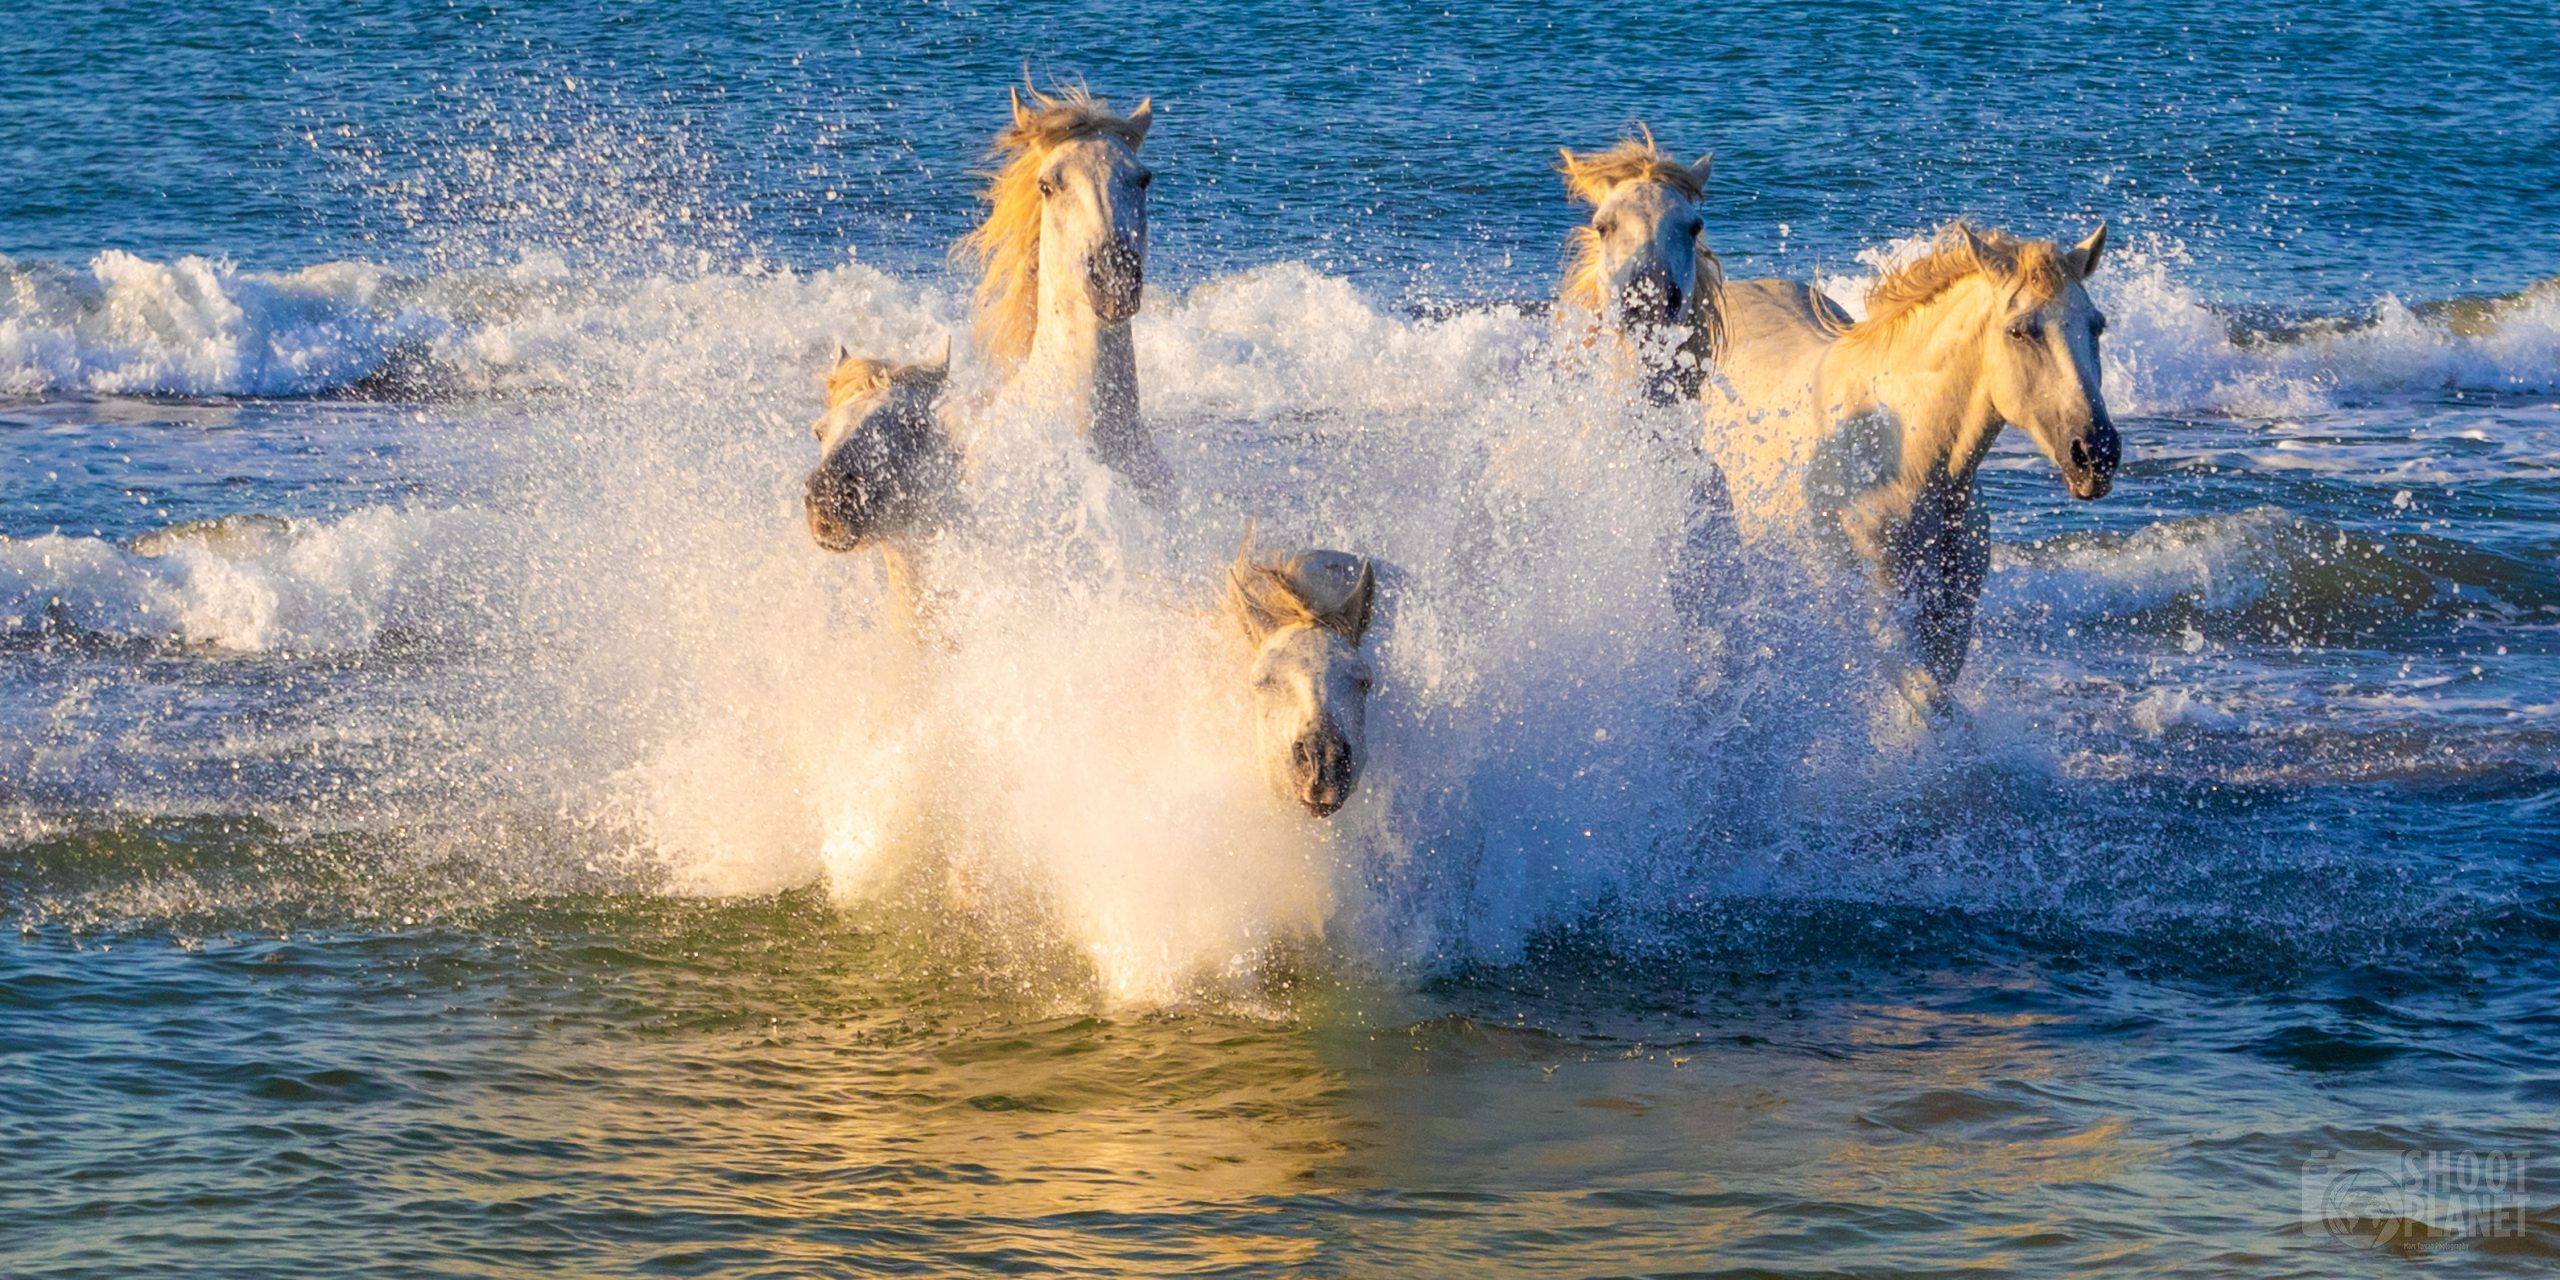 Horses galloping in the sea, Camargue France